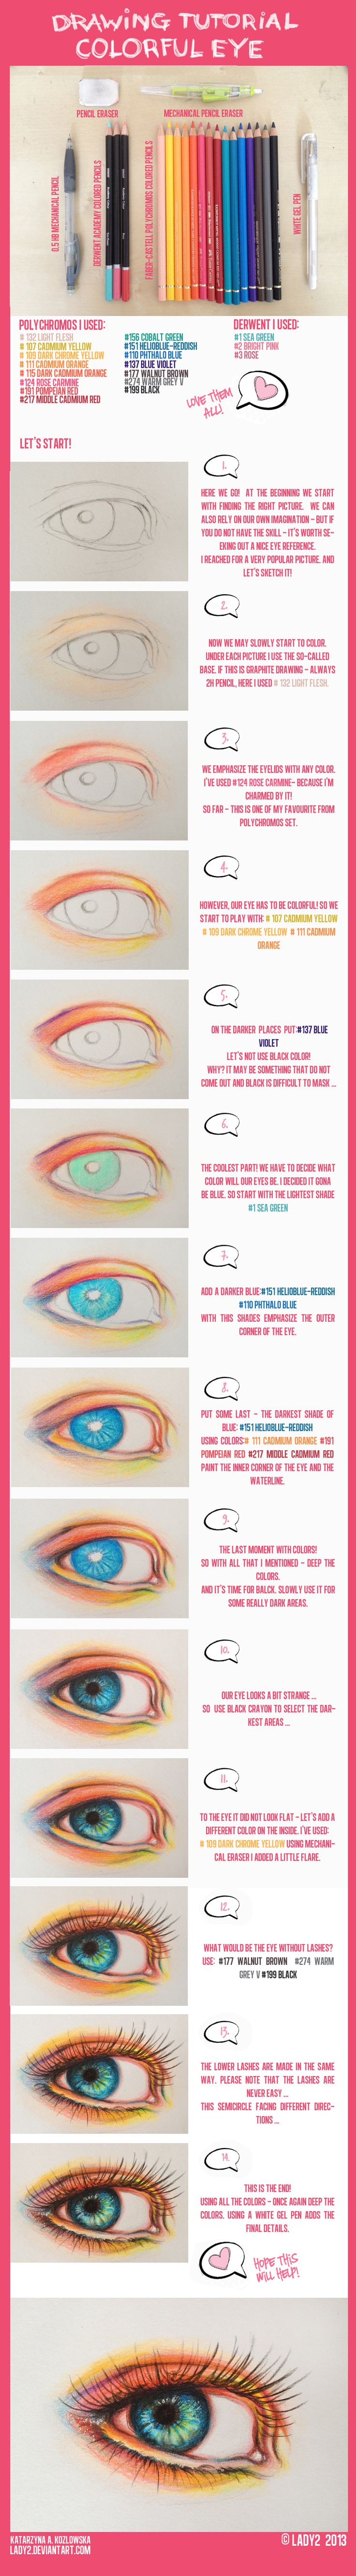 Colored_pencil_eye_tutorial By Lady2iantart On @deviantart Promo  By Art Ed Central · Drawing An Eyeeye